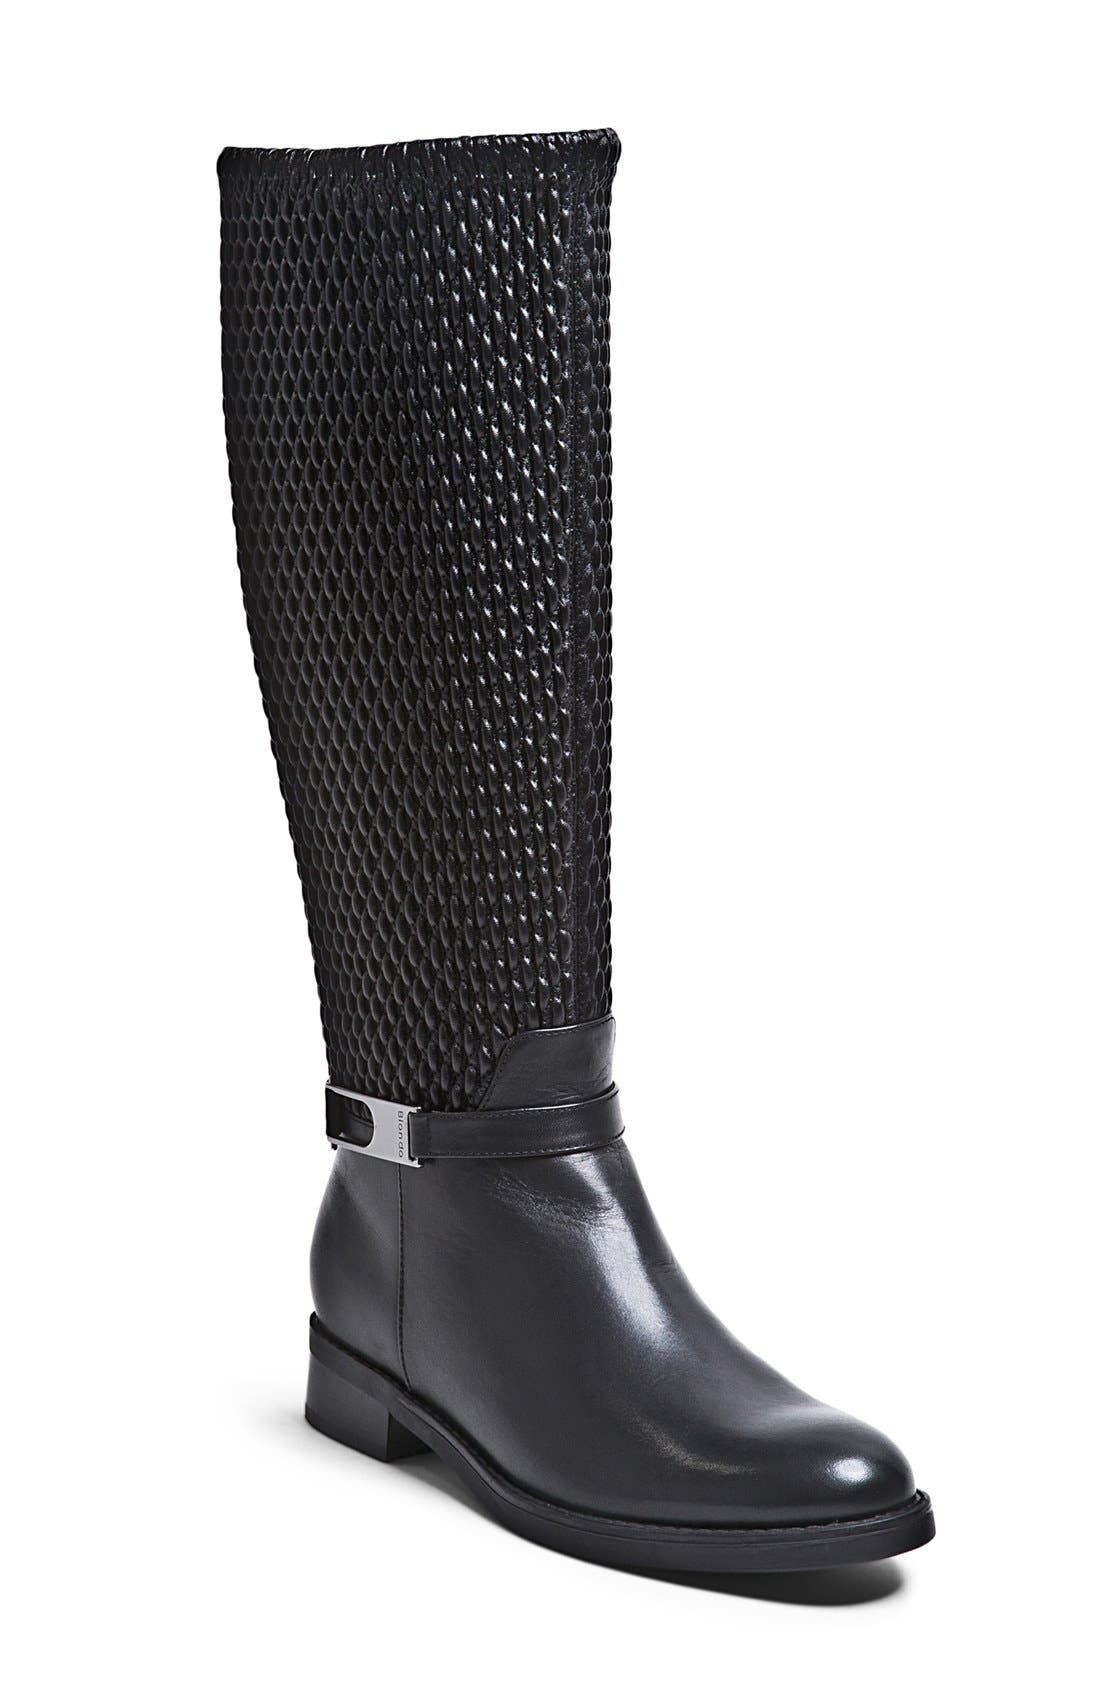 BLONDO 'Emma' Waterproof Stretch Shaft Riding Boot